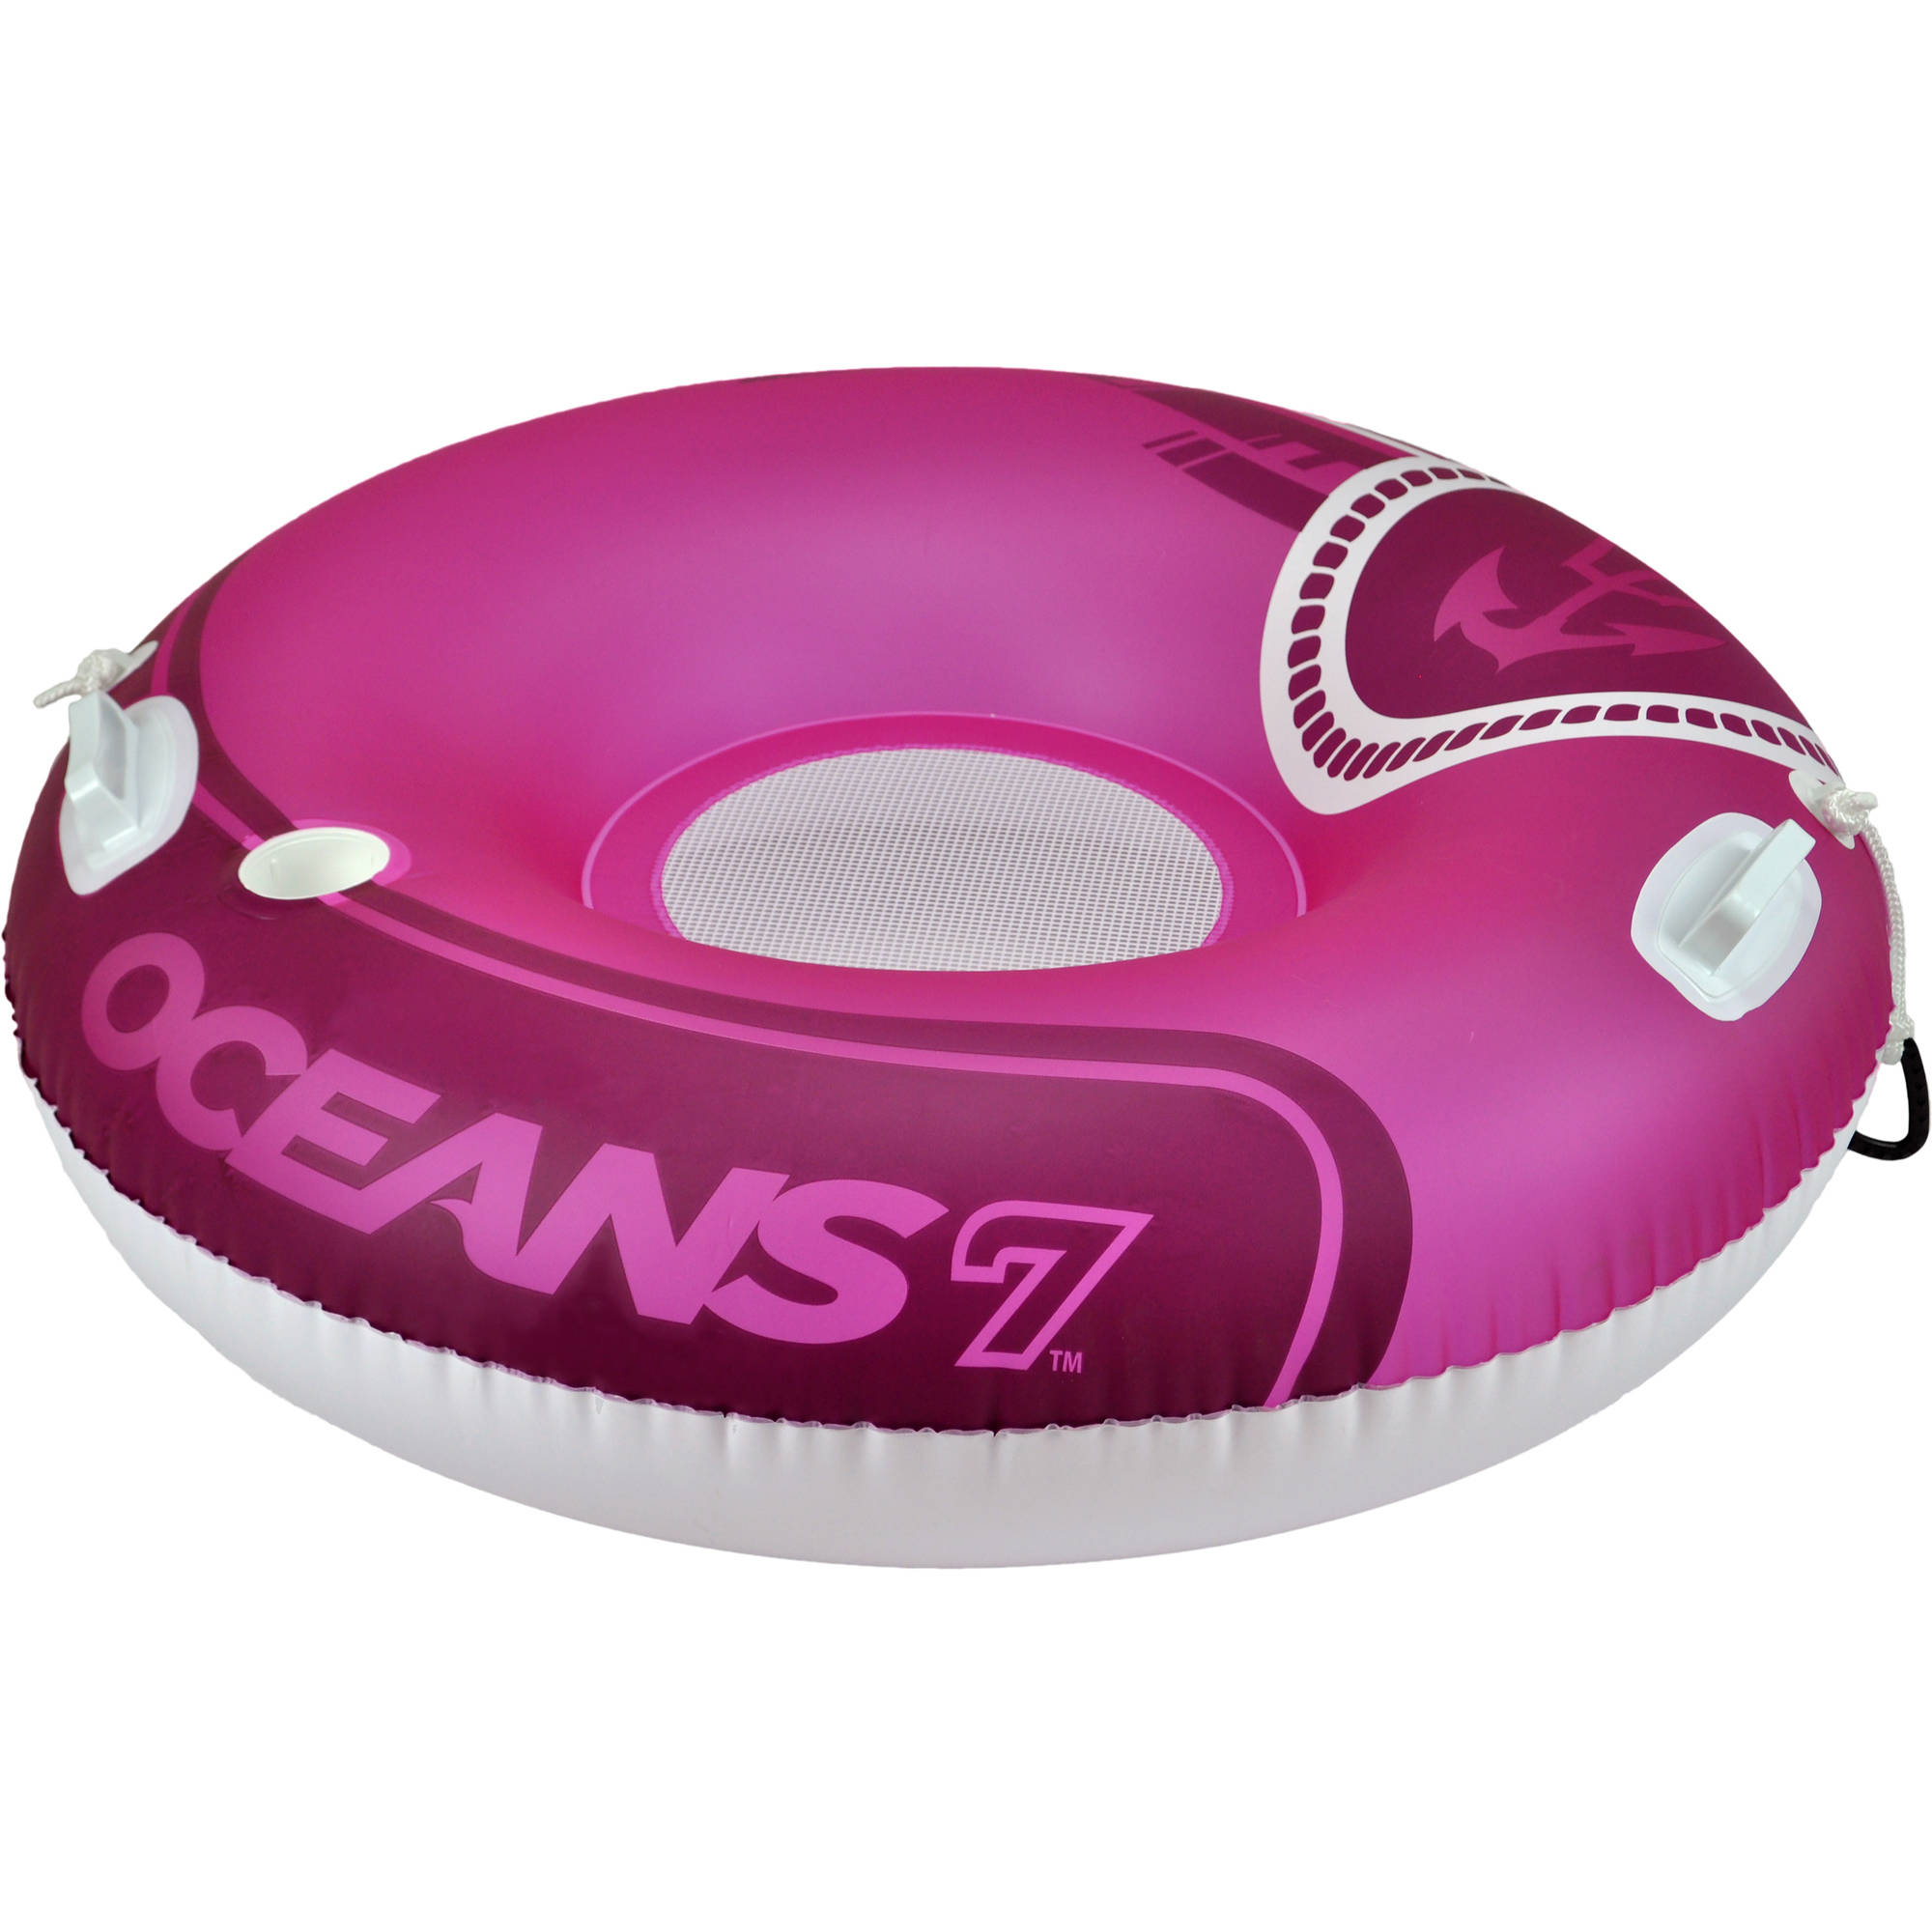 Oceans 7 Round River Tube, Pink